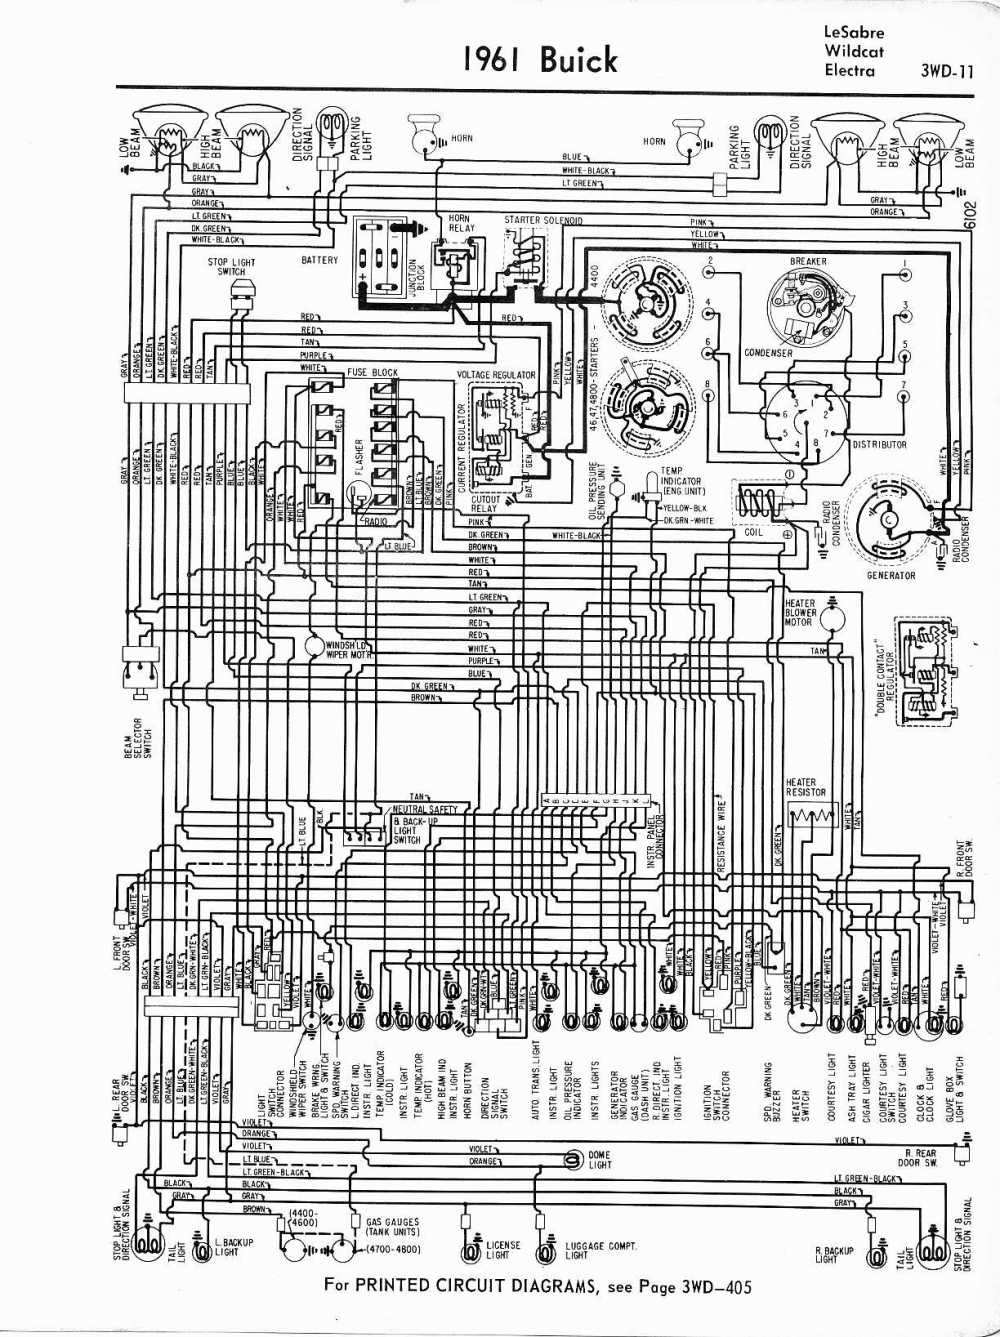 medium resolution of 1967 buick lesabre wiring diagrams wiring diagram third level 2003 buick lesabre wiring diagram 1967 buick lesabre wiring diagrams